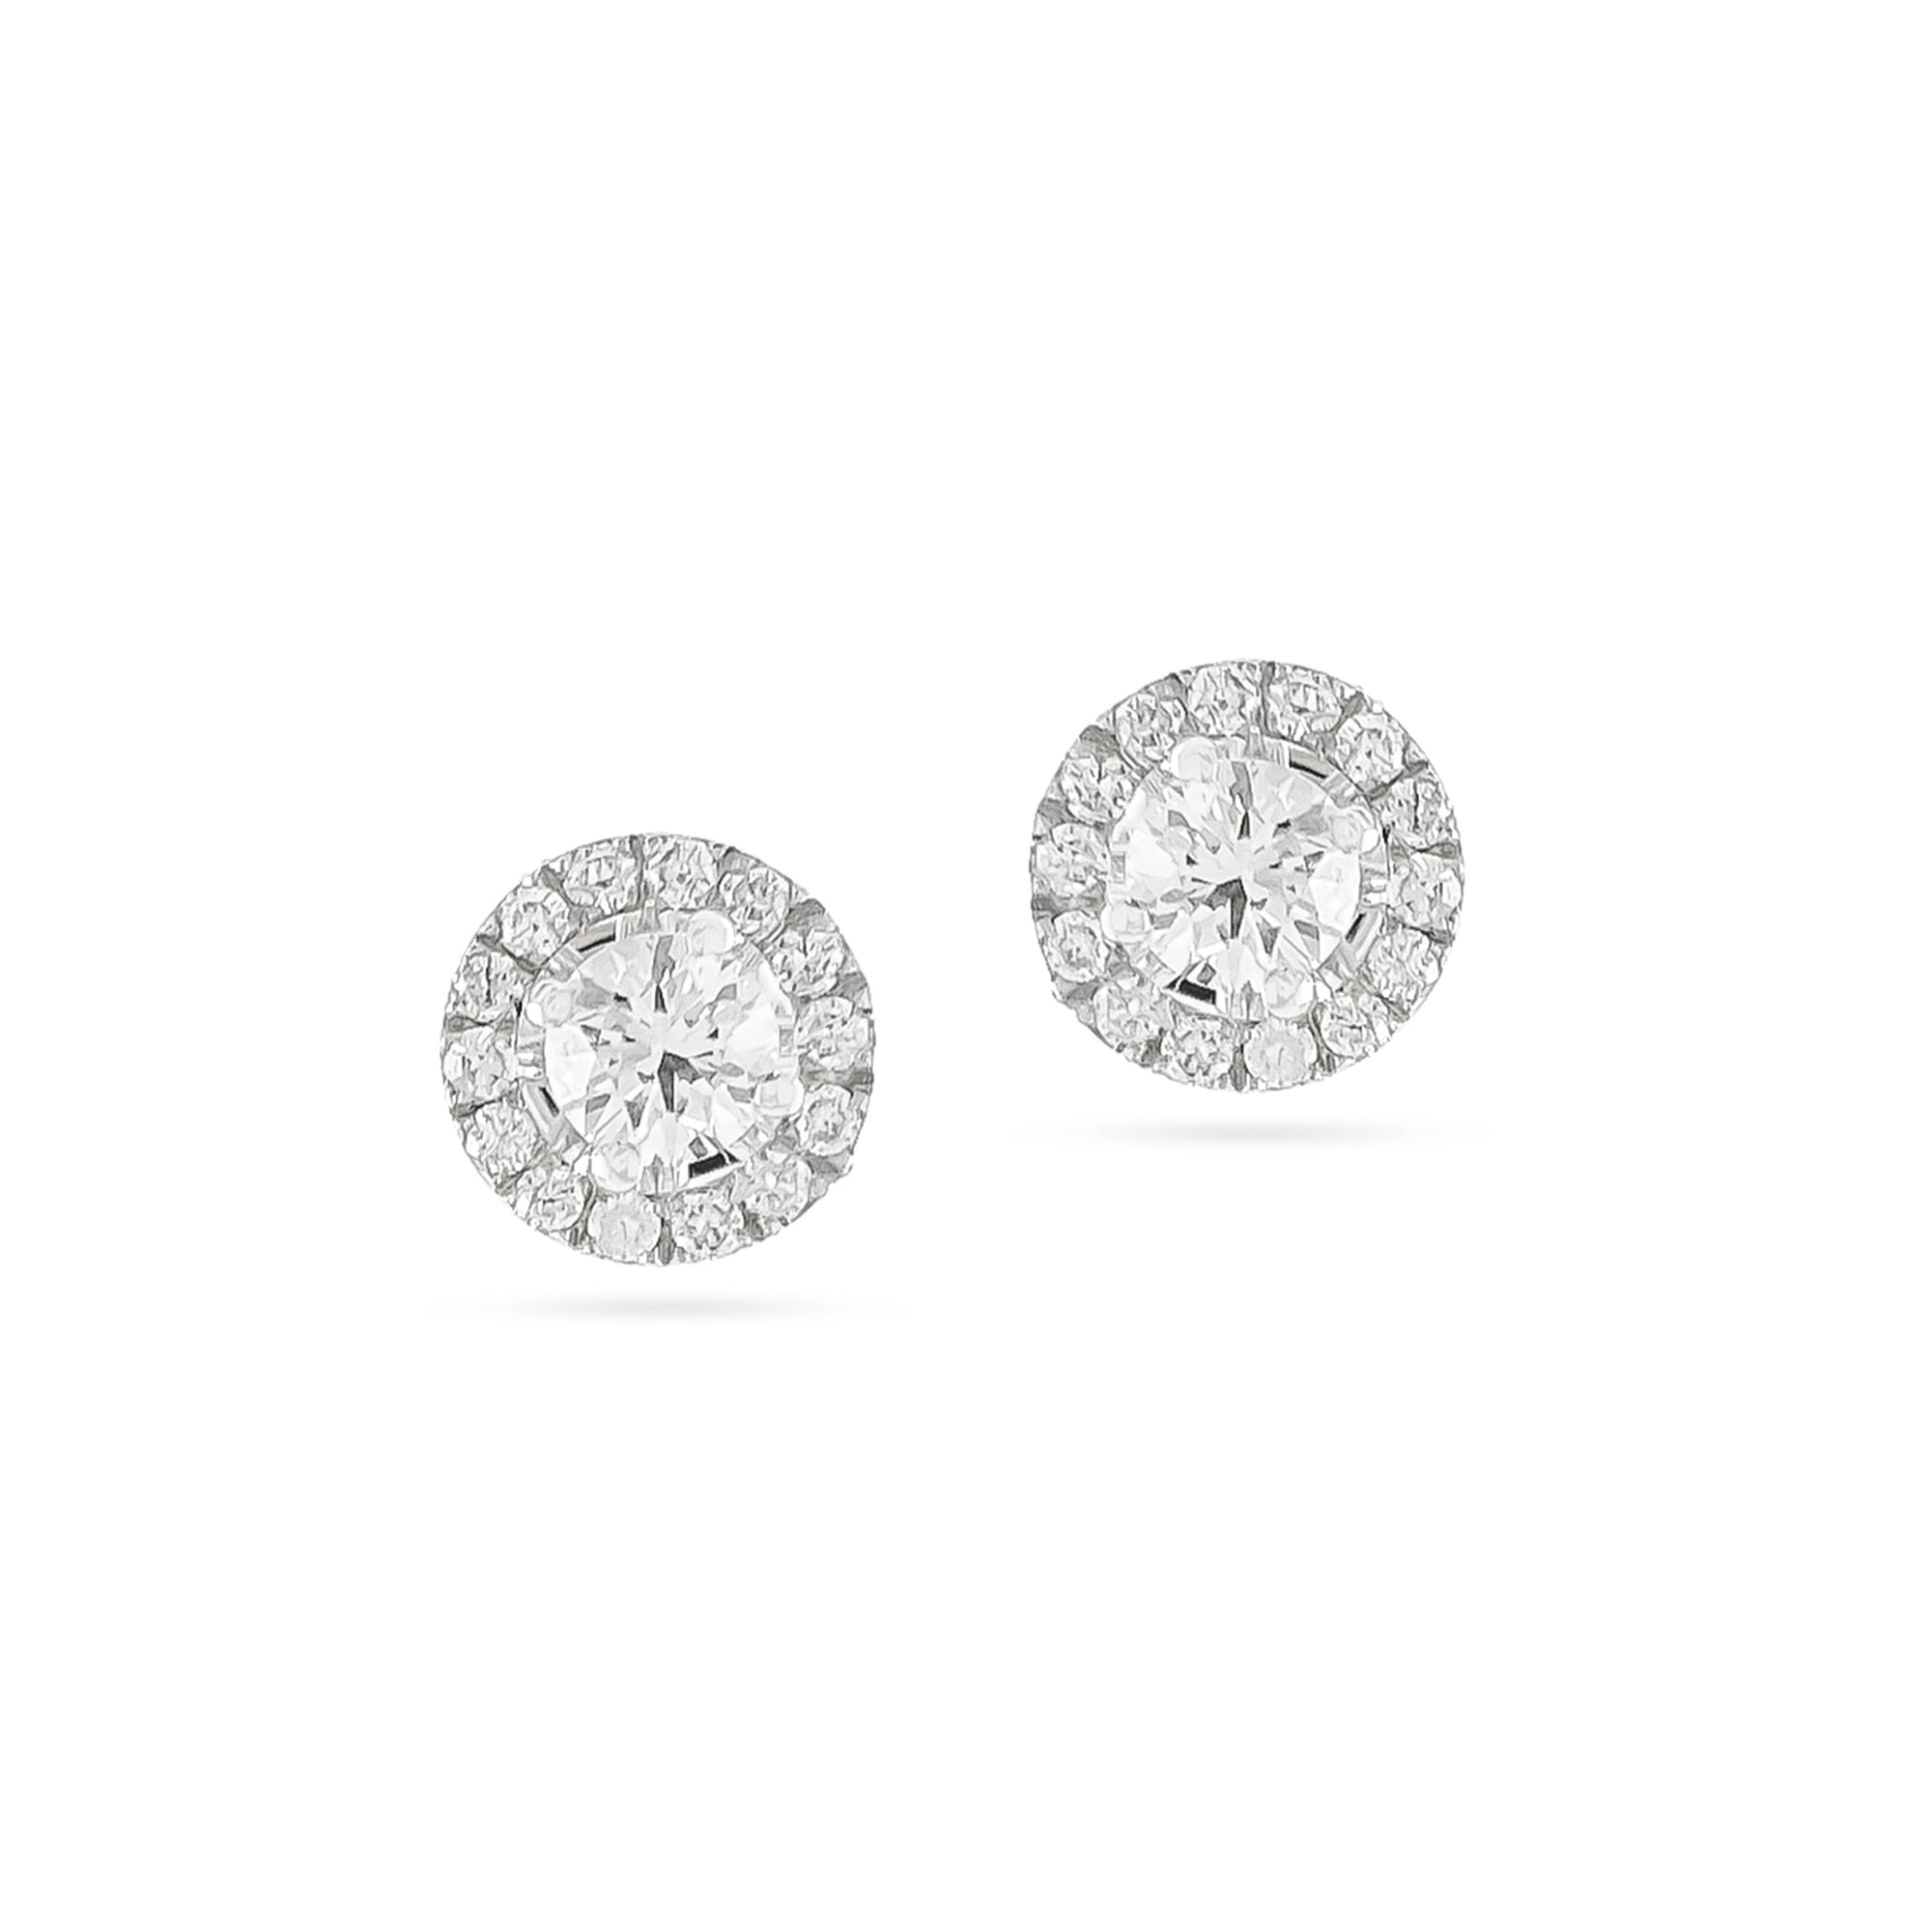 18ct White Gold Halo Diamond Stud Earrings